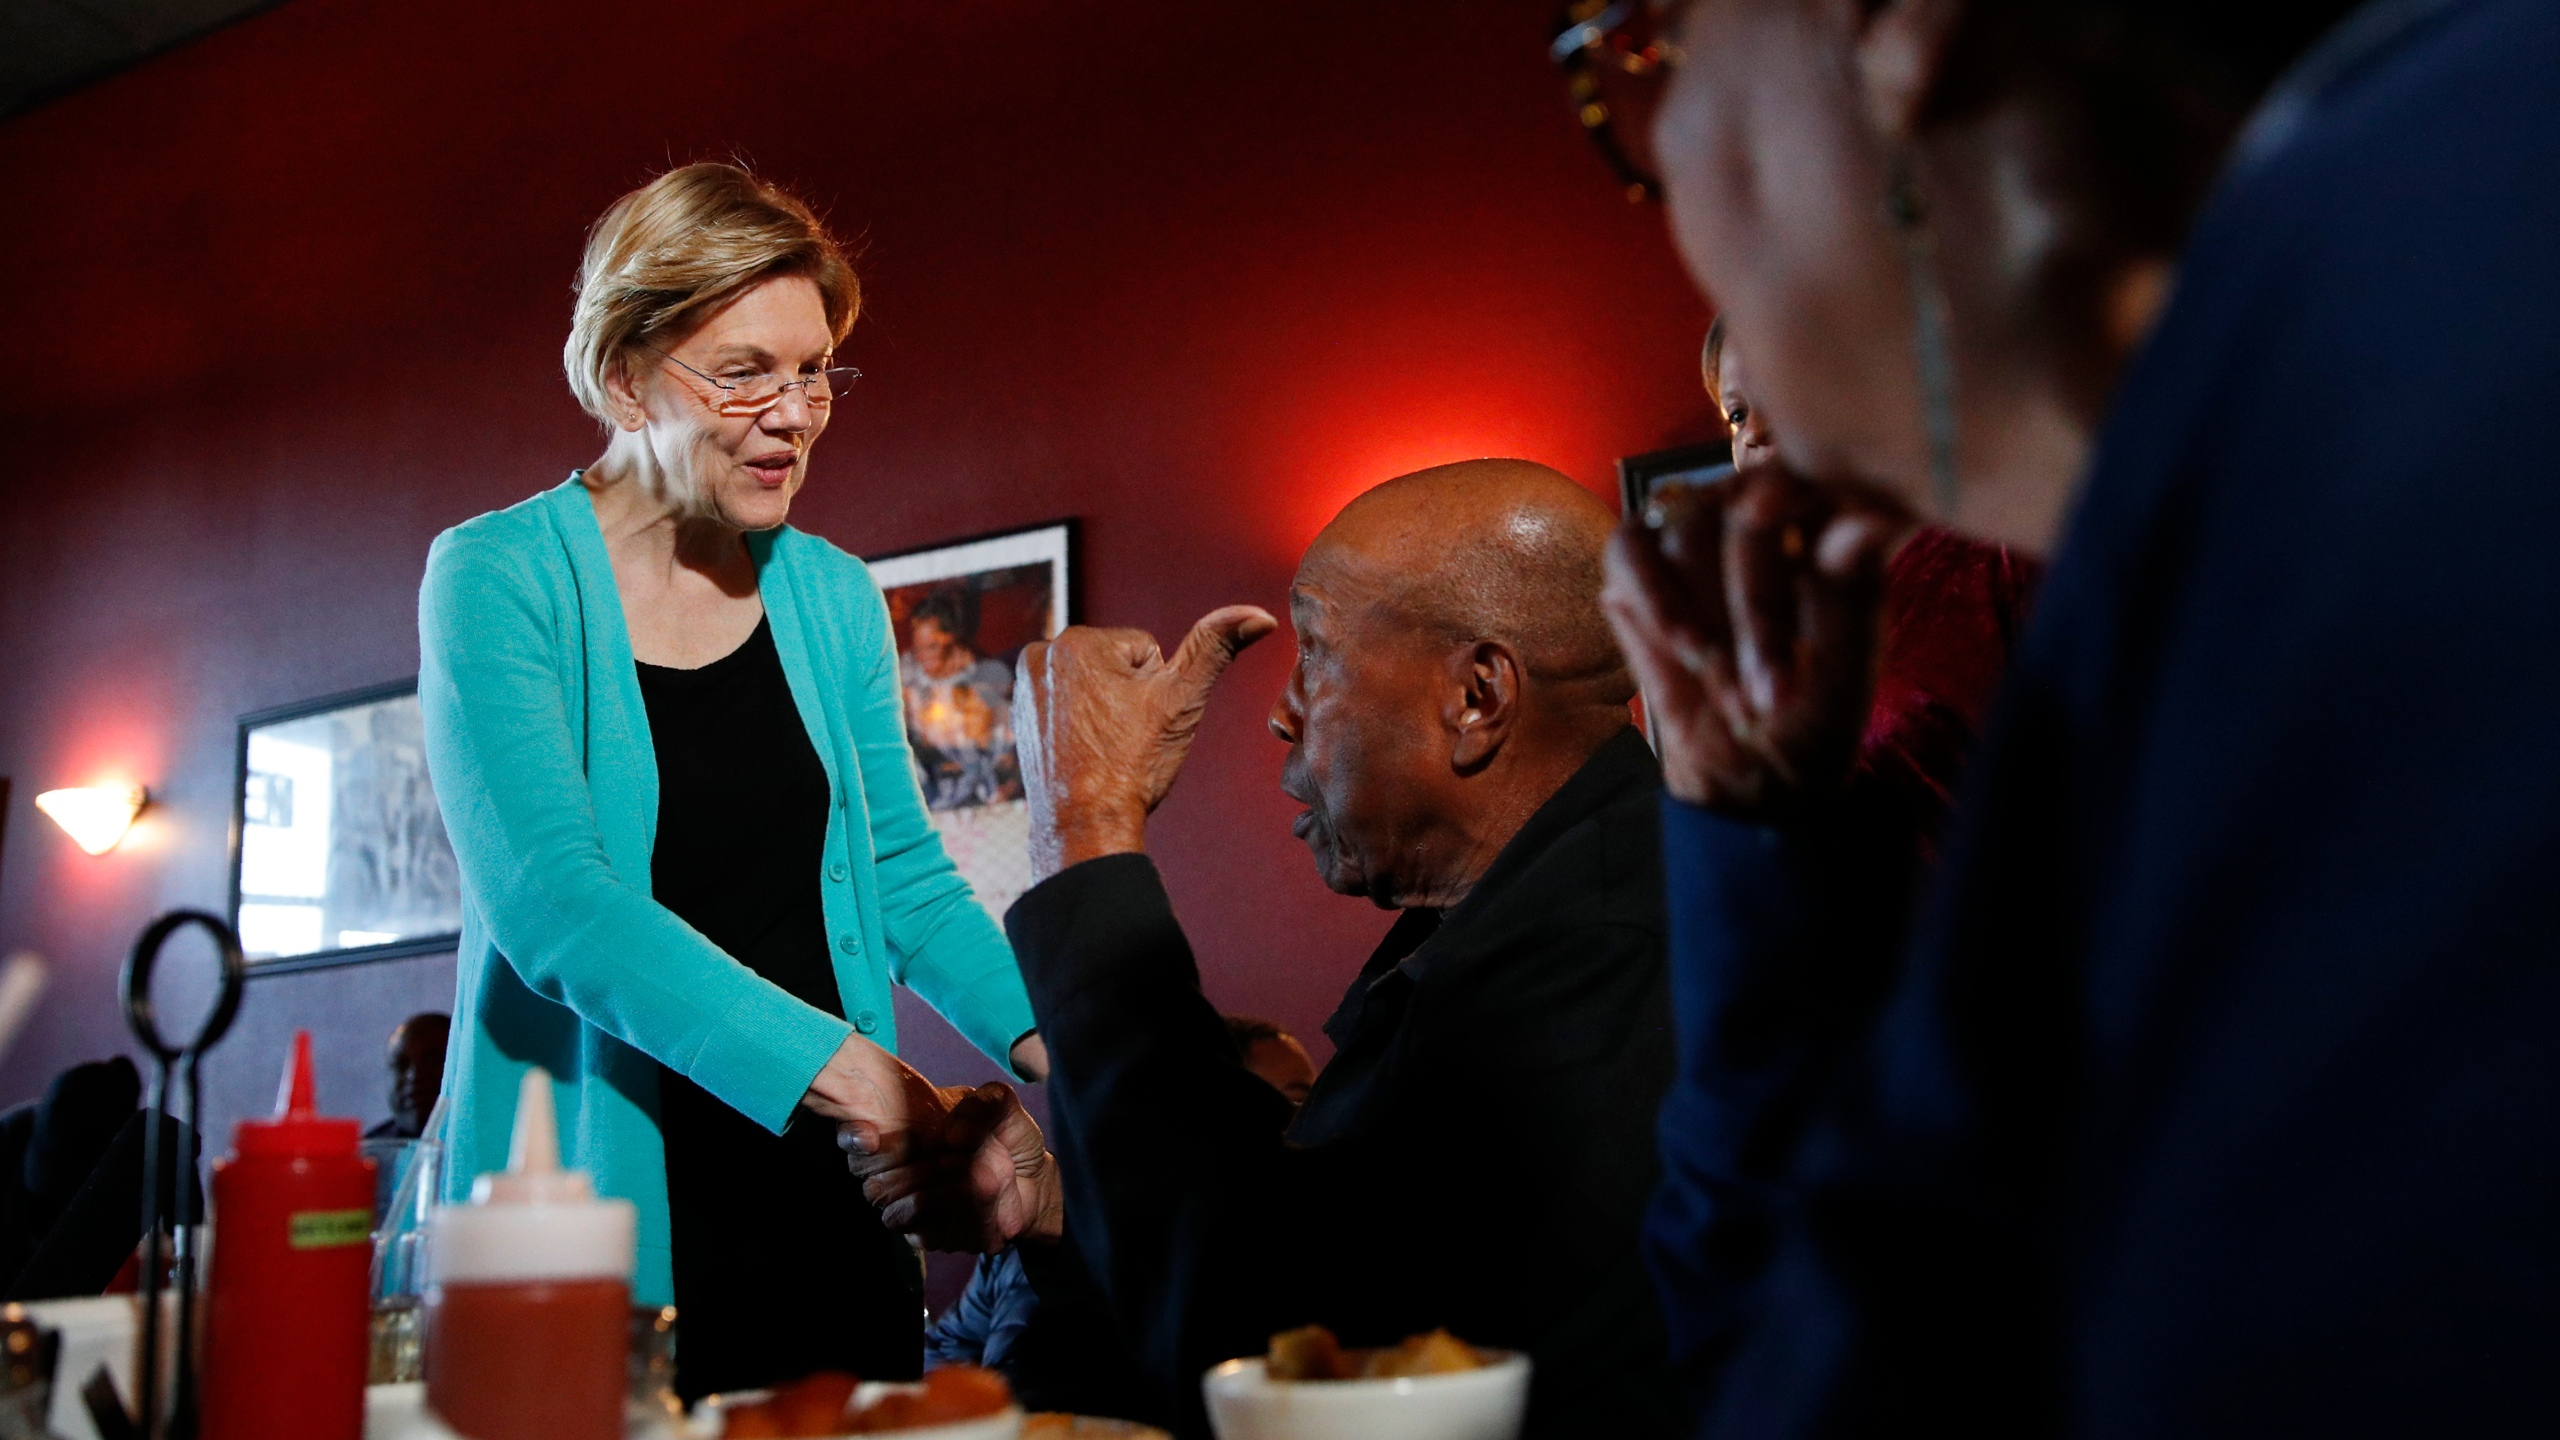 Bill Mamgum, Shirley Mamgum, Elizabeth Warren